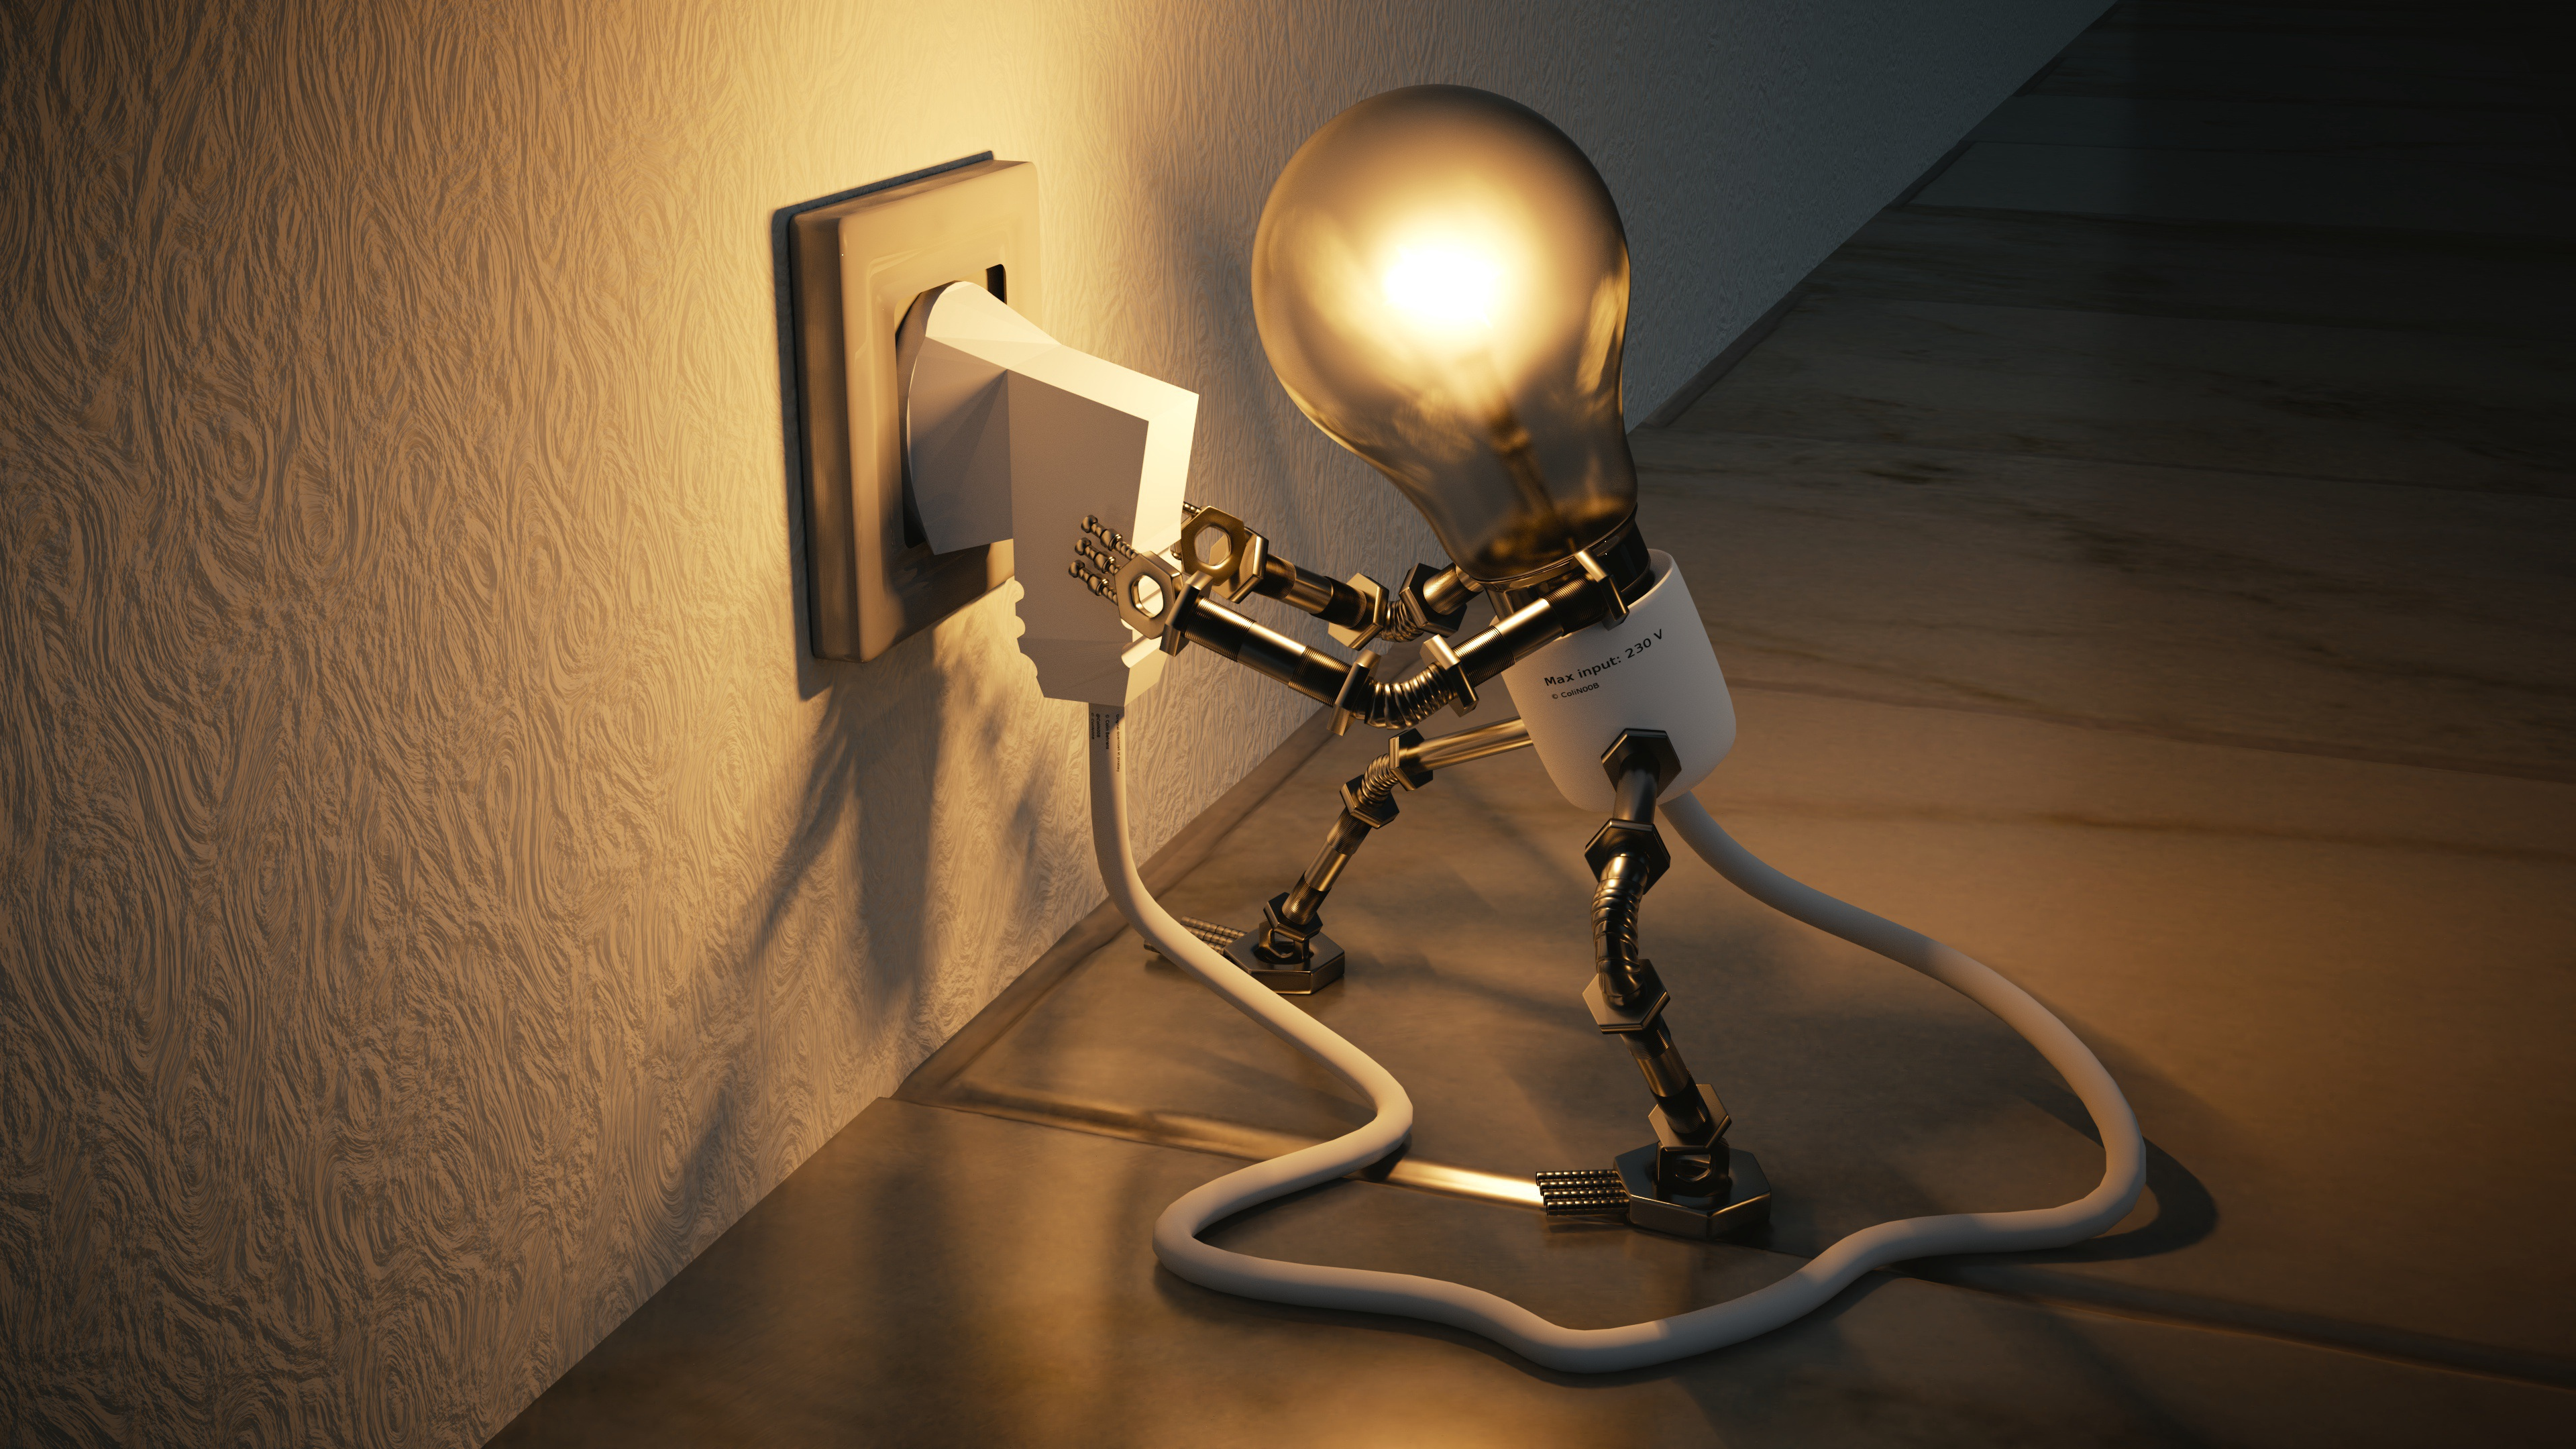 Lamp outlet idea electricity